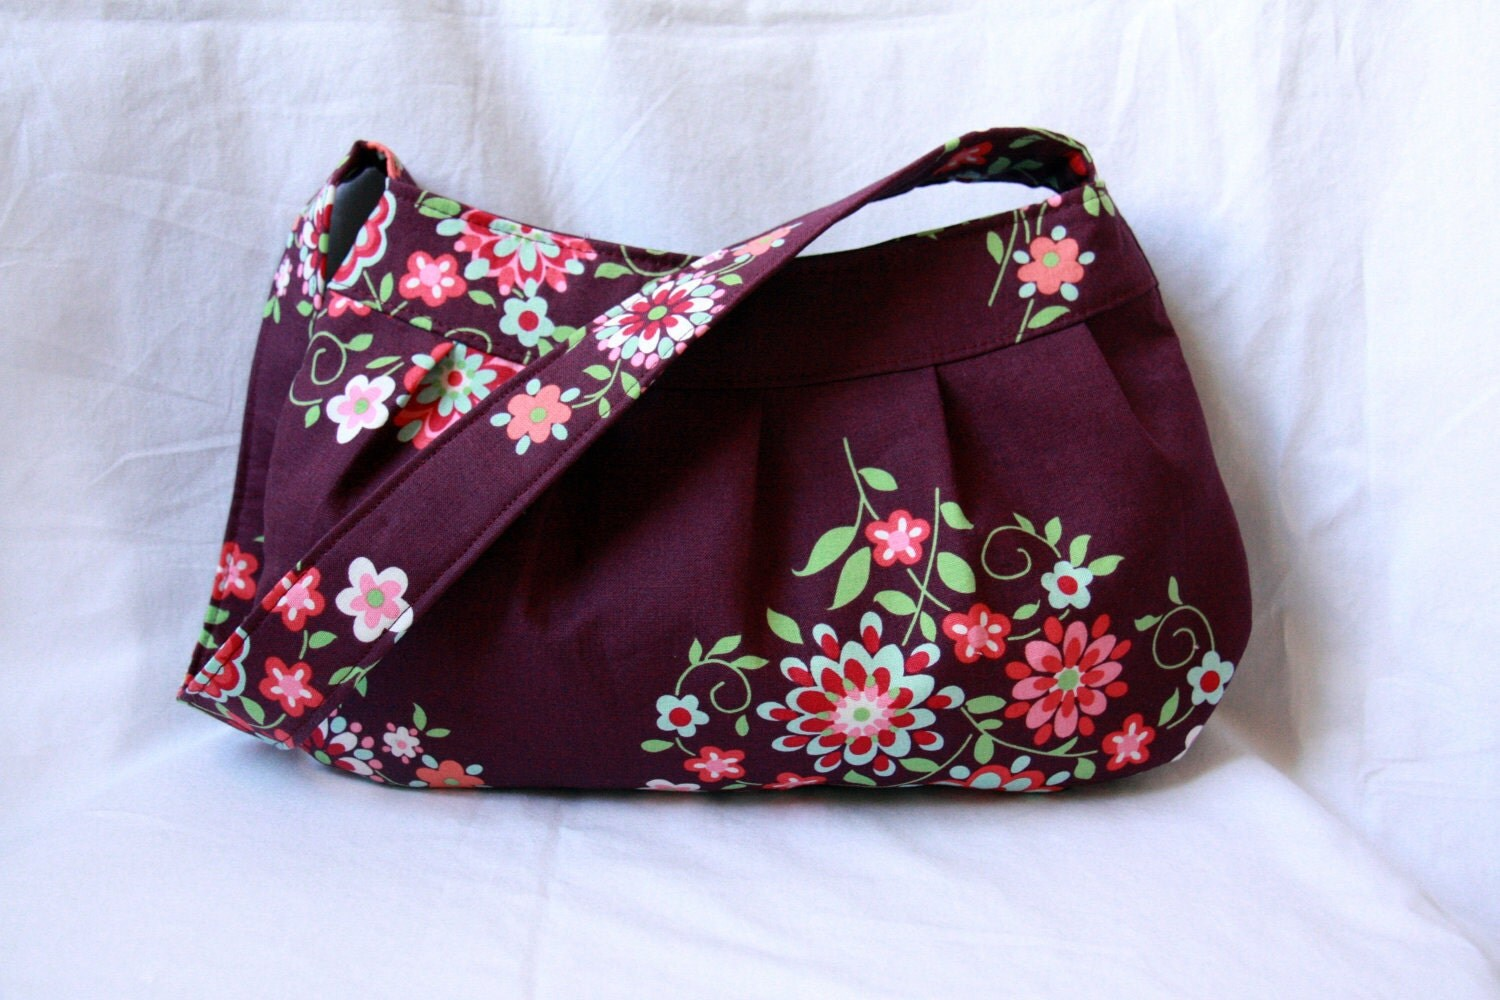 Reserved for traceycoppcock: Buttercup Bag with Adjustable Strap - Amy Butler Memento Floral Purse with Polka Dot Lining